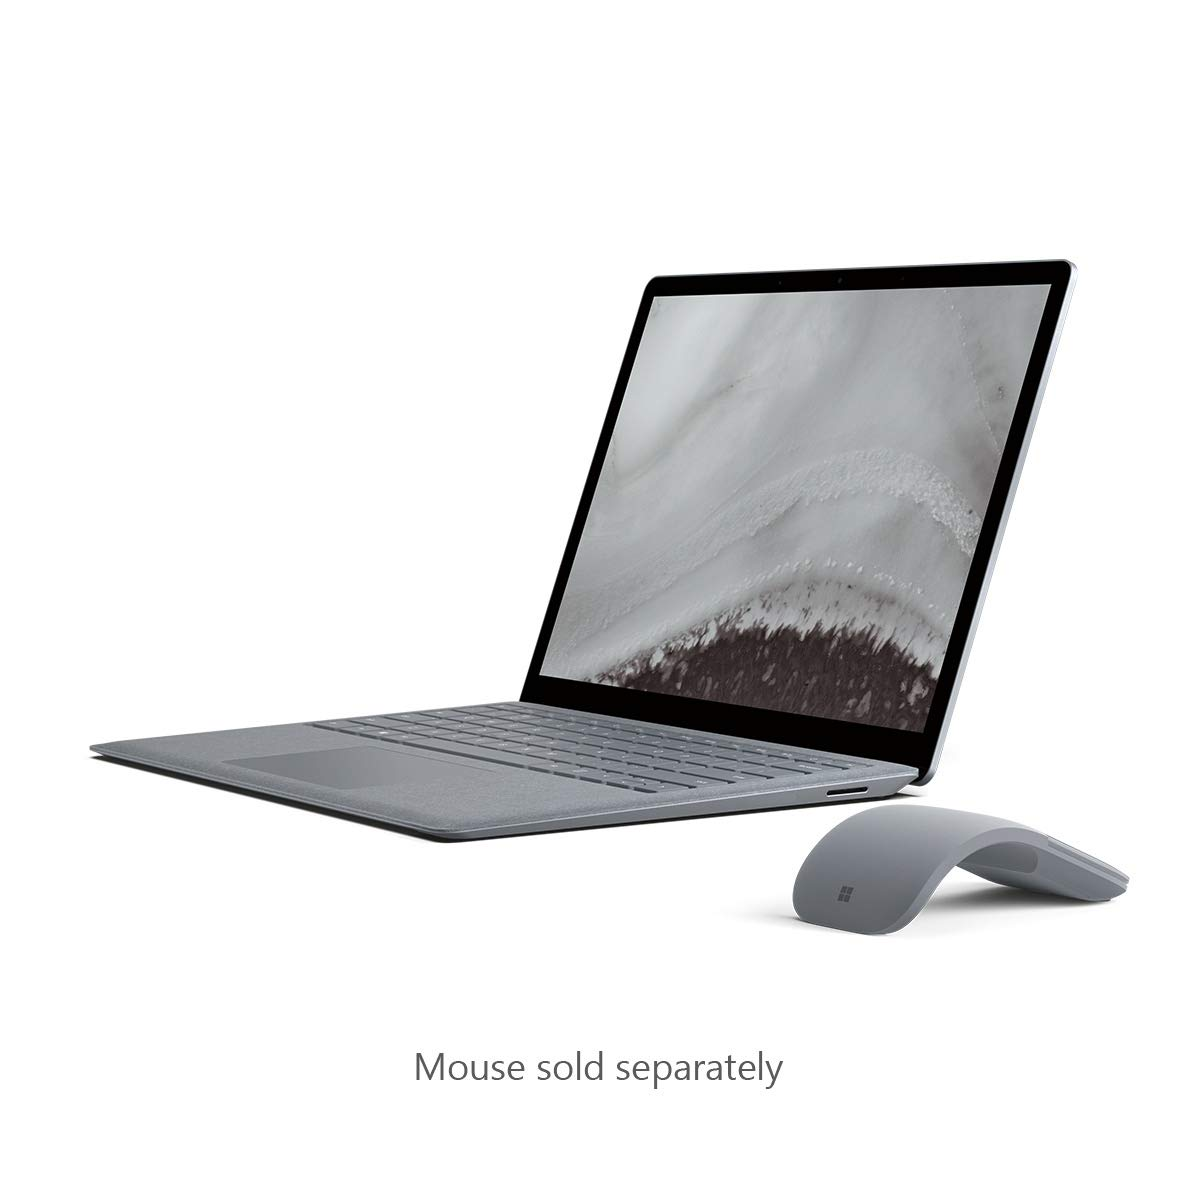 Microsoft  Surface Laptop 2 (Intel Core i5, 8GB RAM, 256GB) - Platinum